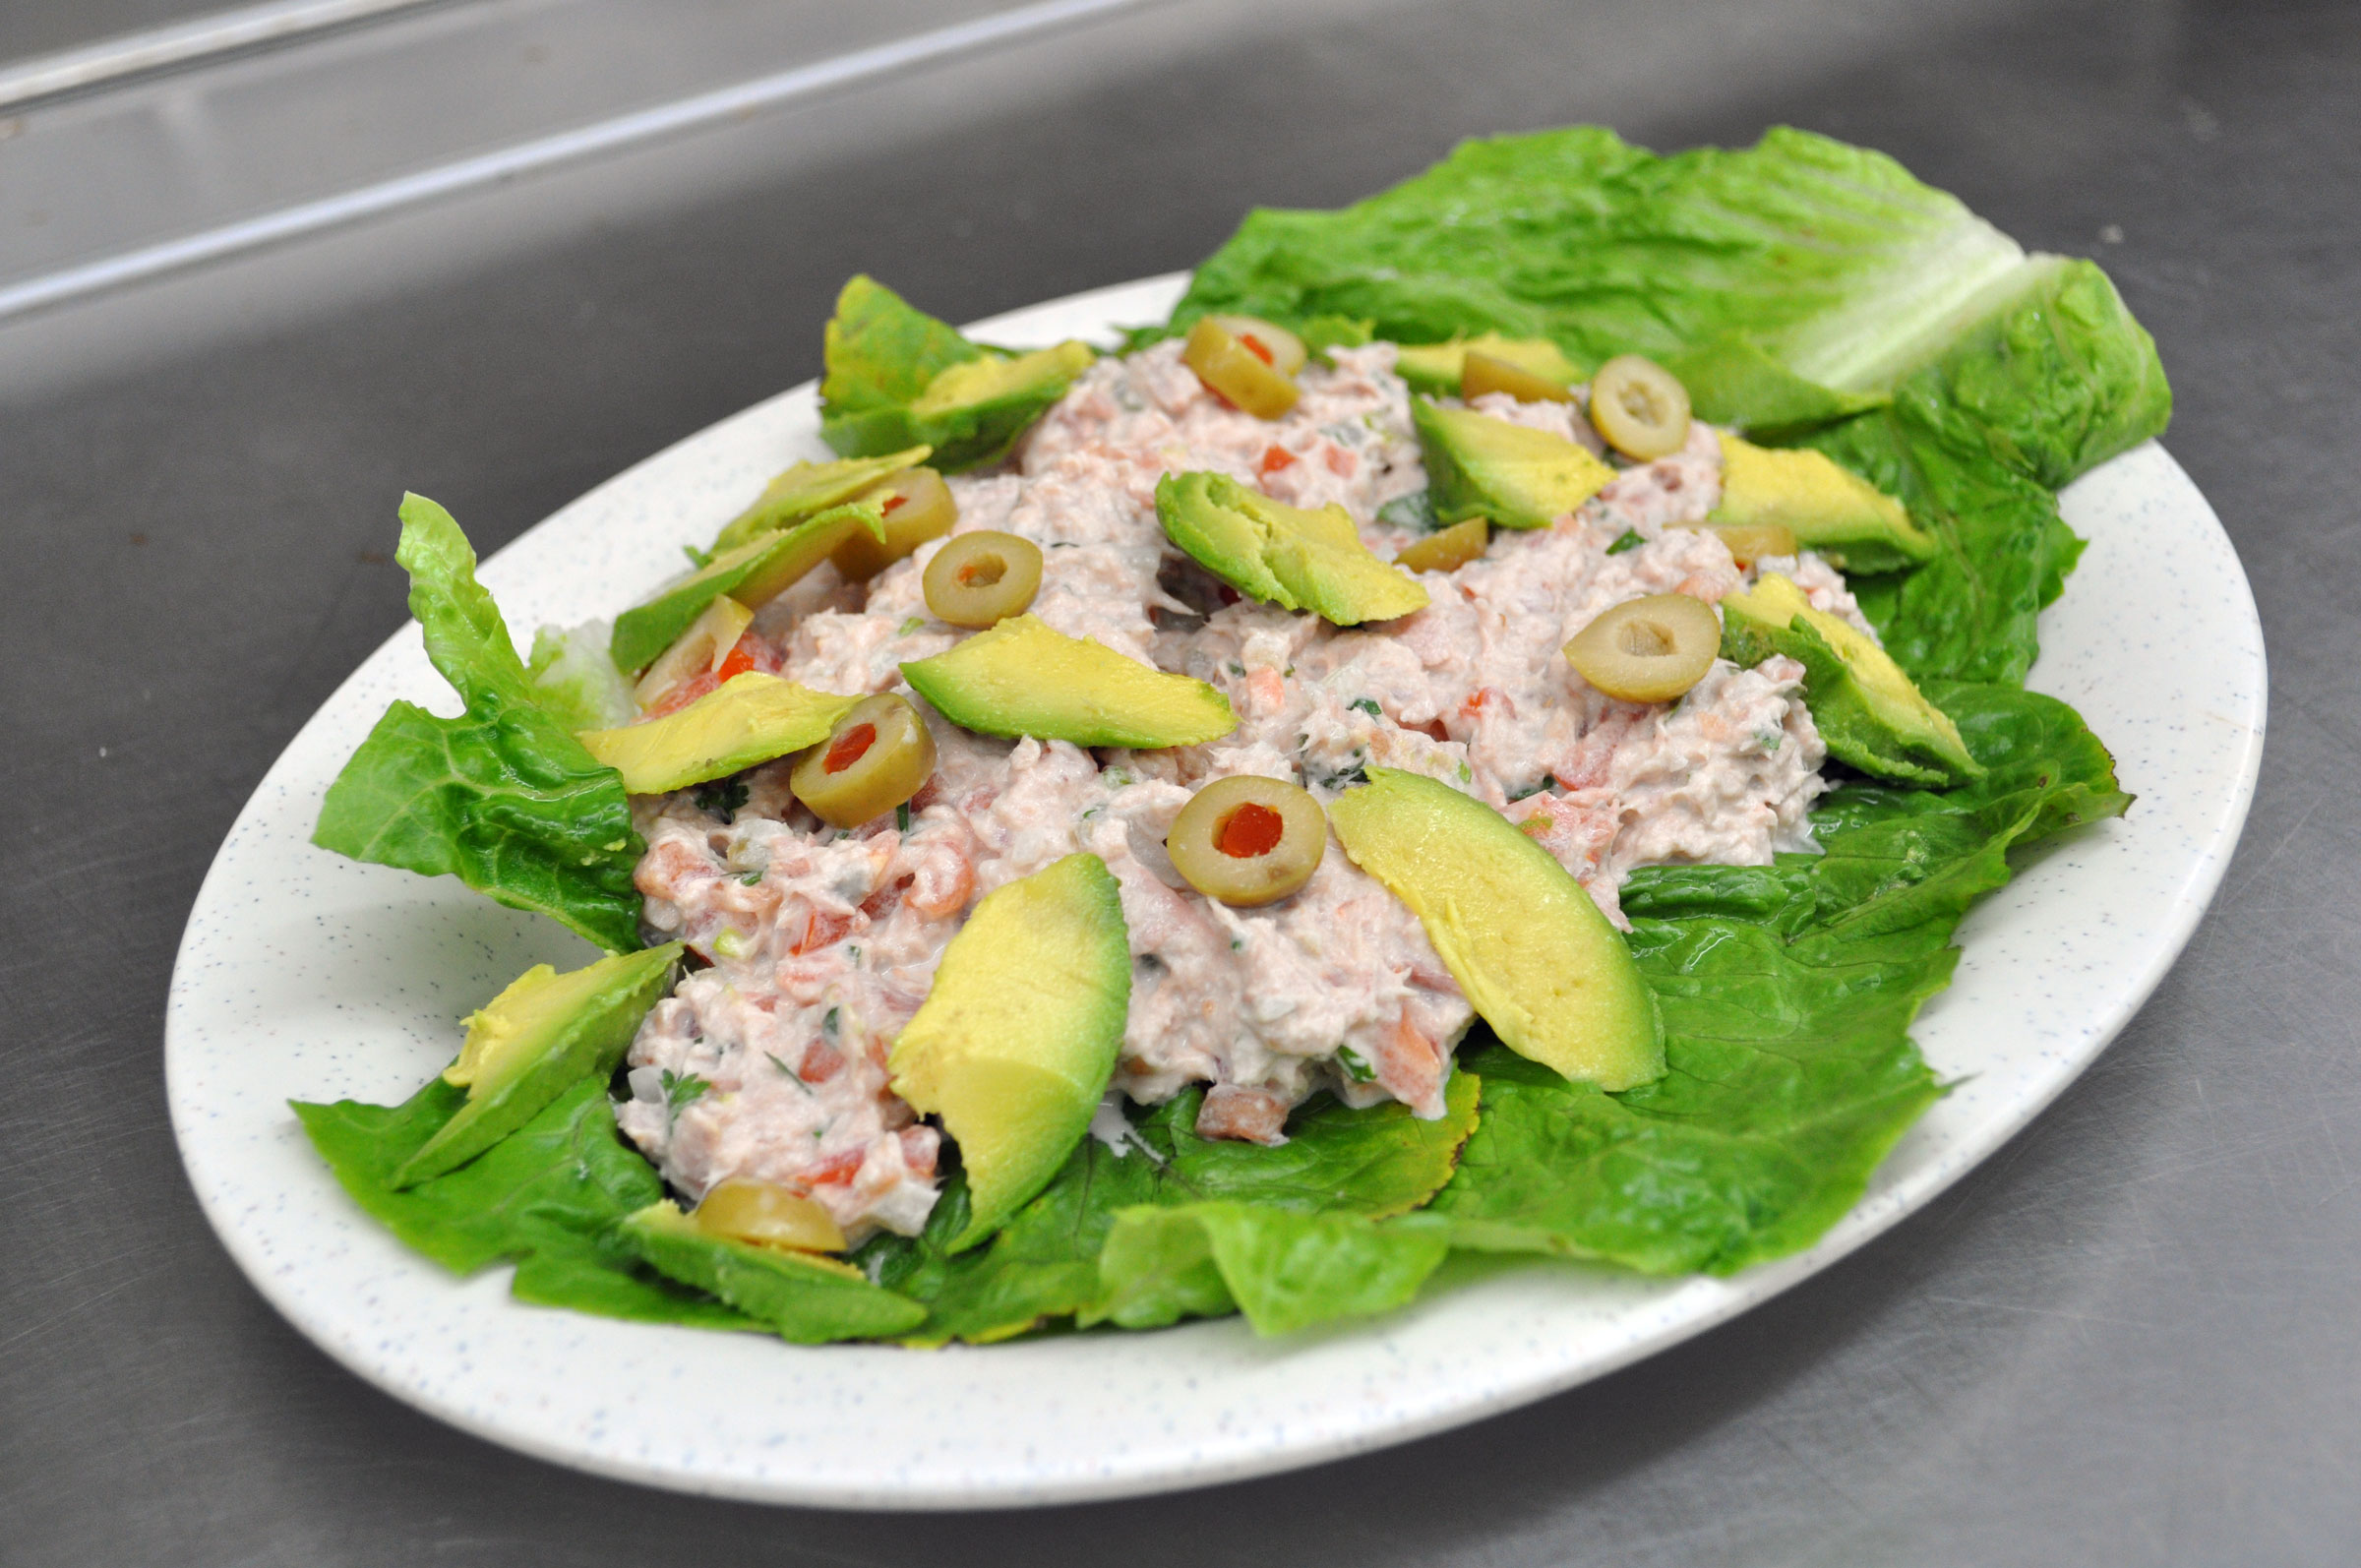 Tampio-web-menu-tuna-salad.jpg